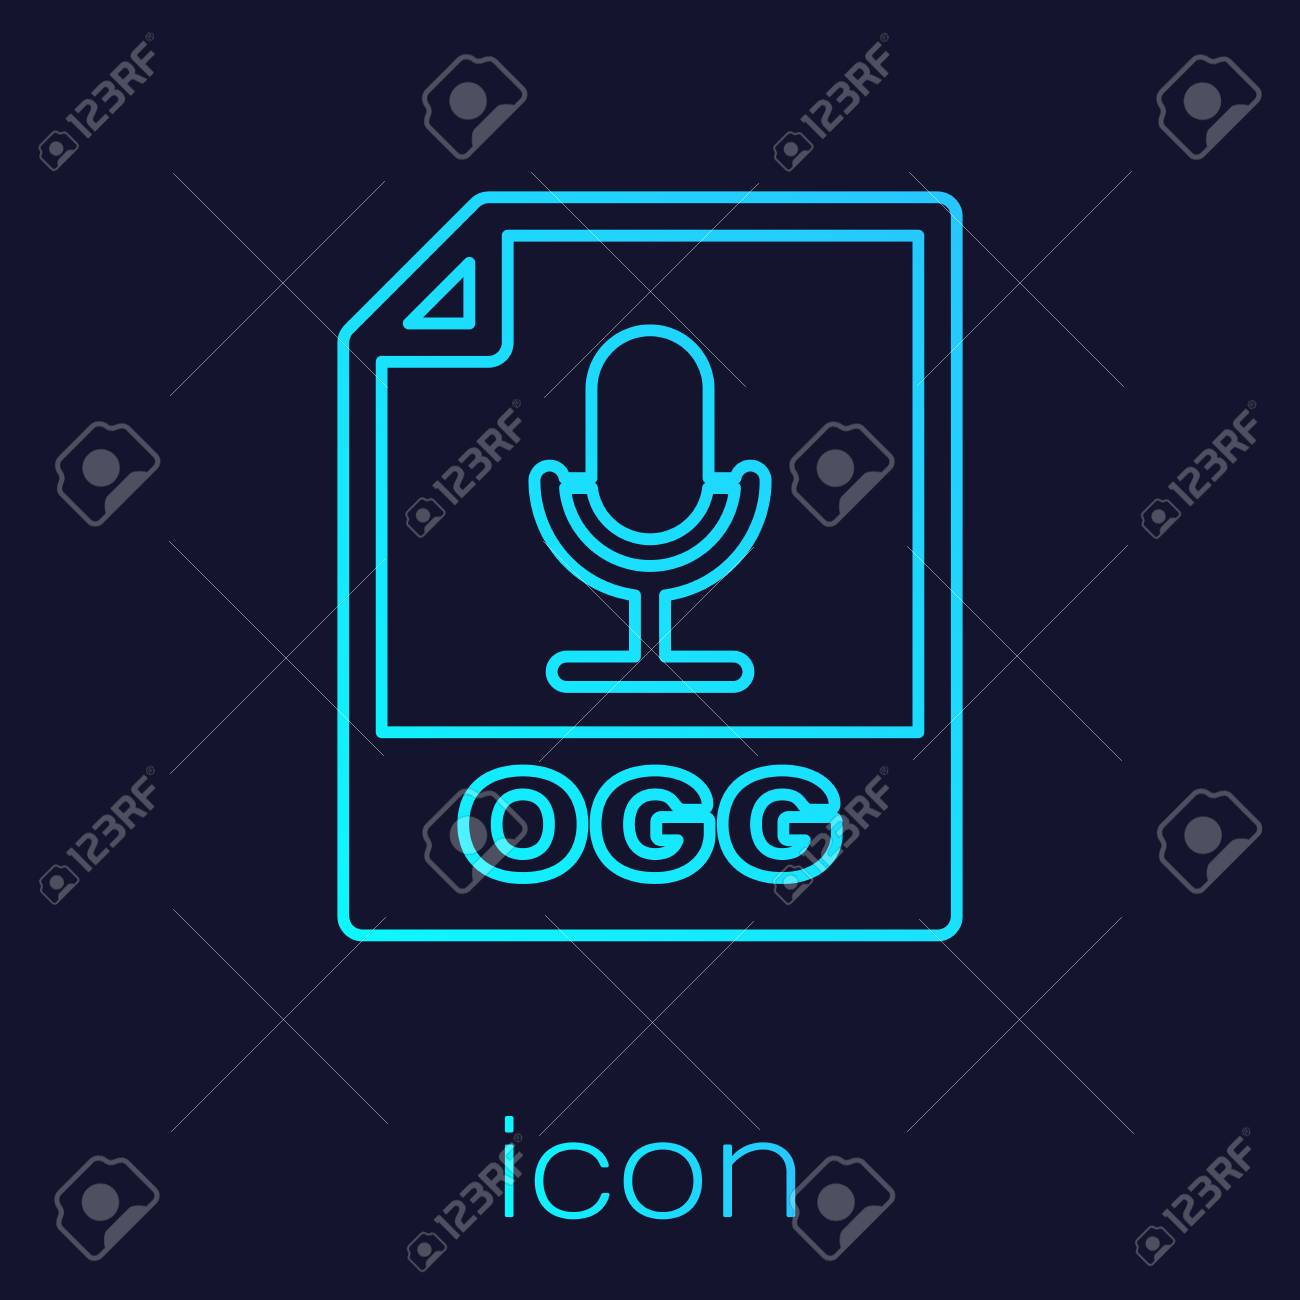 Turquoise OGG file document icon  Download ogg button line icon